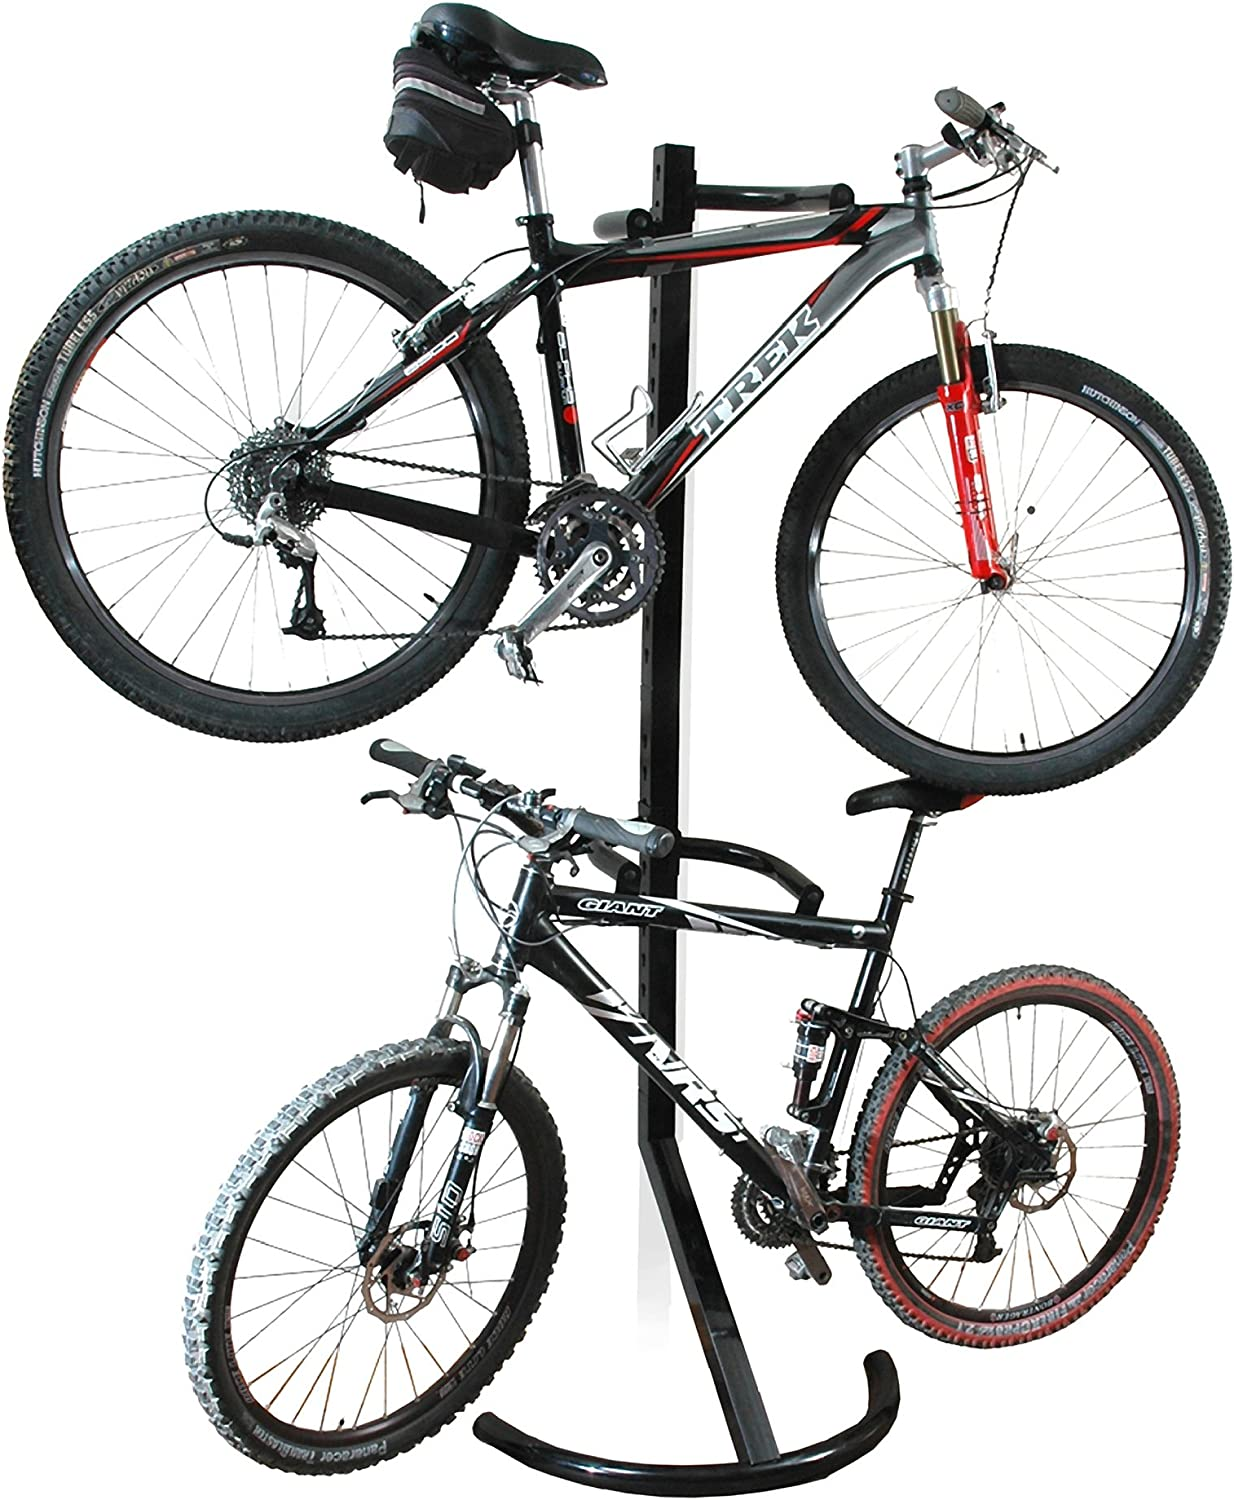 Wall-mounted Mountain bikes NFLOBD 2 Pcs Bicycle Hook hanging Portable Cycle Storage Rack Parking Buckle with Taillight Mountain Bike Display Stand Clip for bicycles